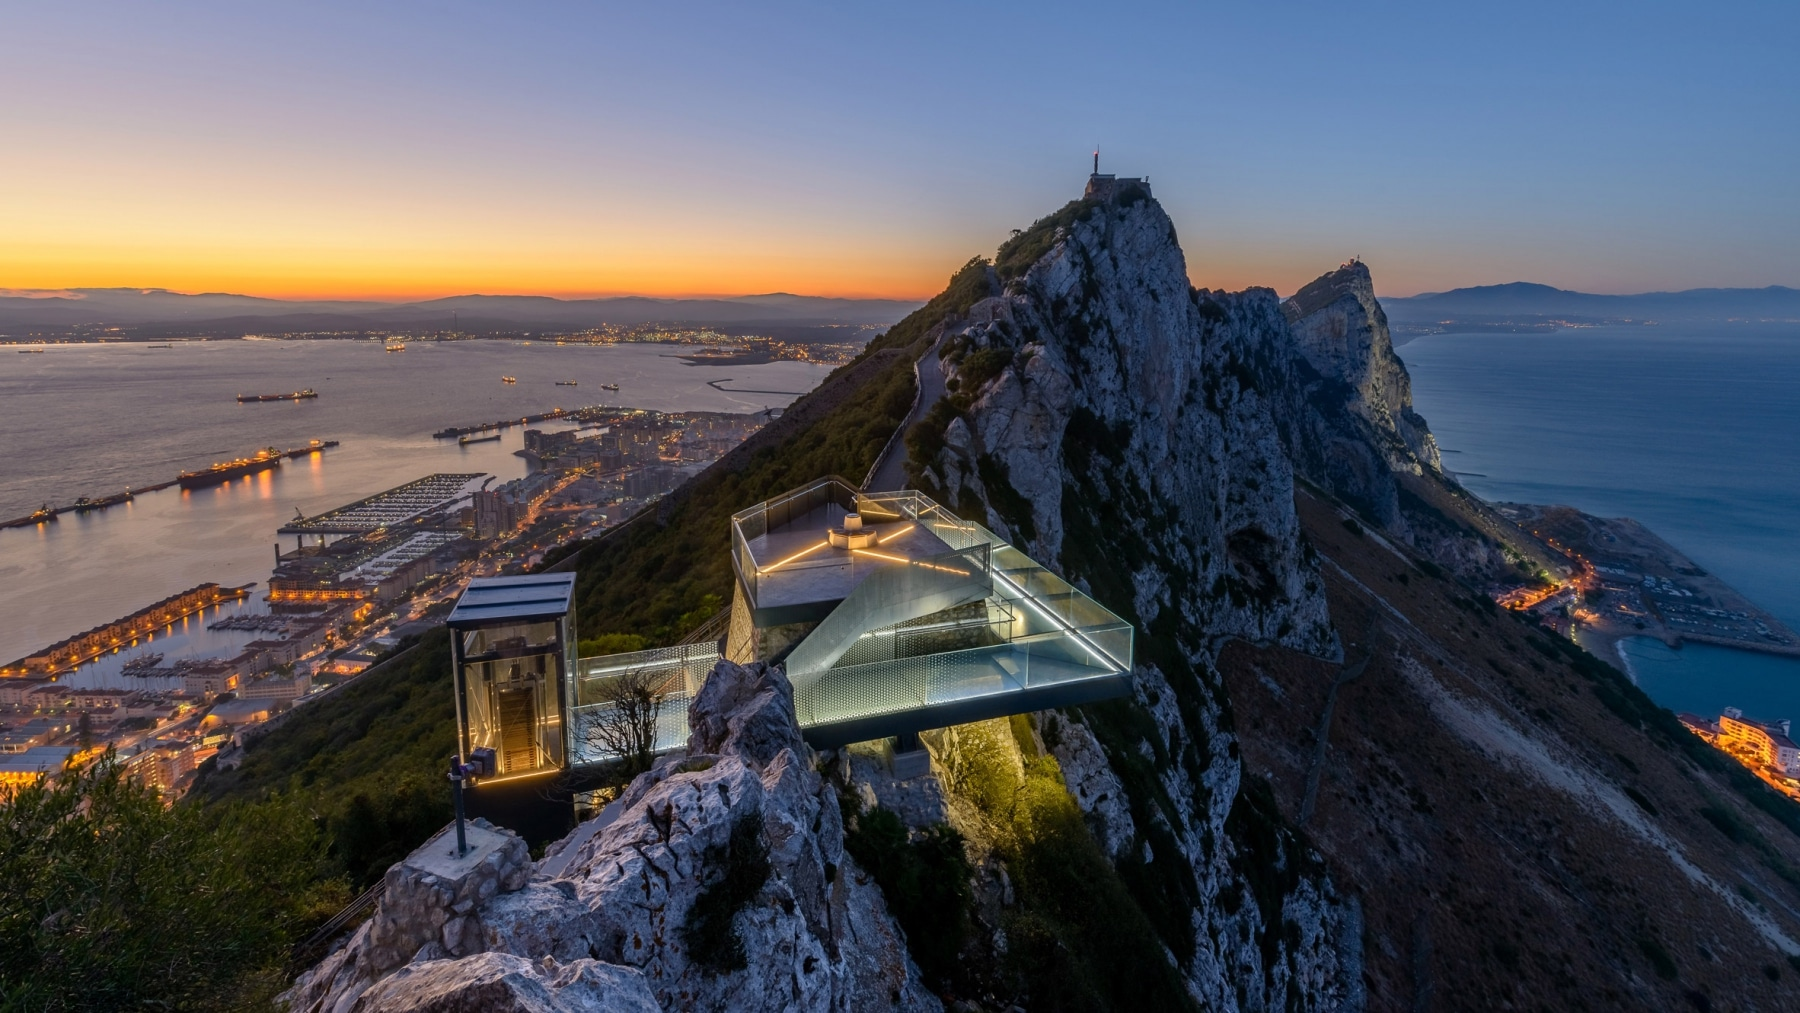 skywalk-gibraltar-1-photo-taken-for-bovis-koala-jv-by-meteogibs-photographer-stephen-ball_41367550800_o